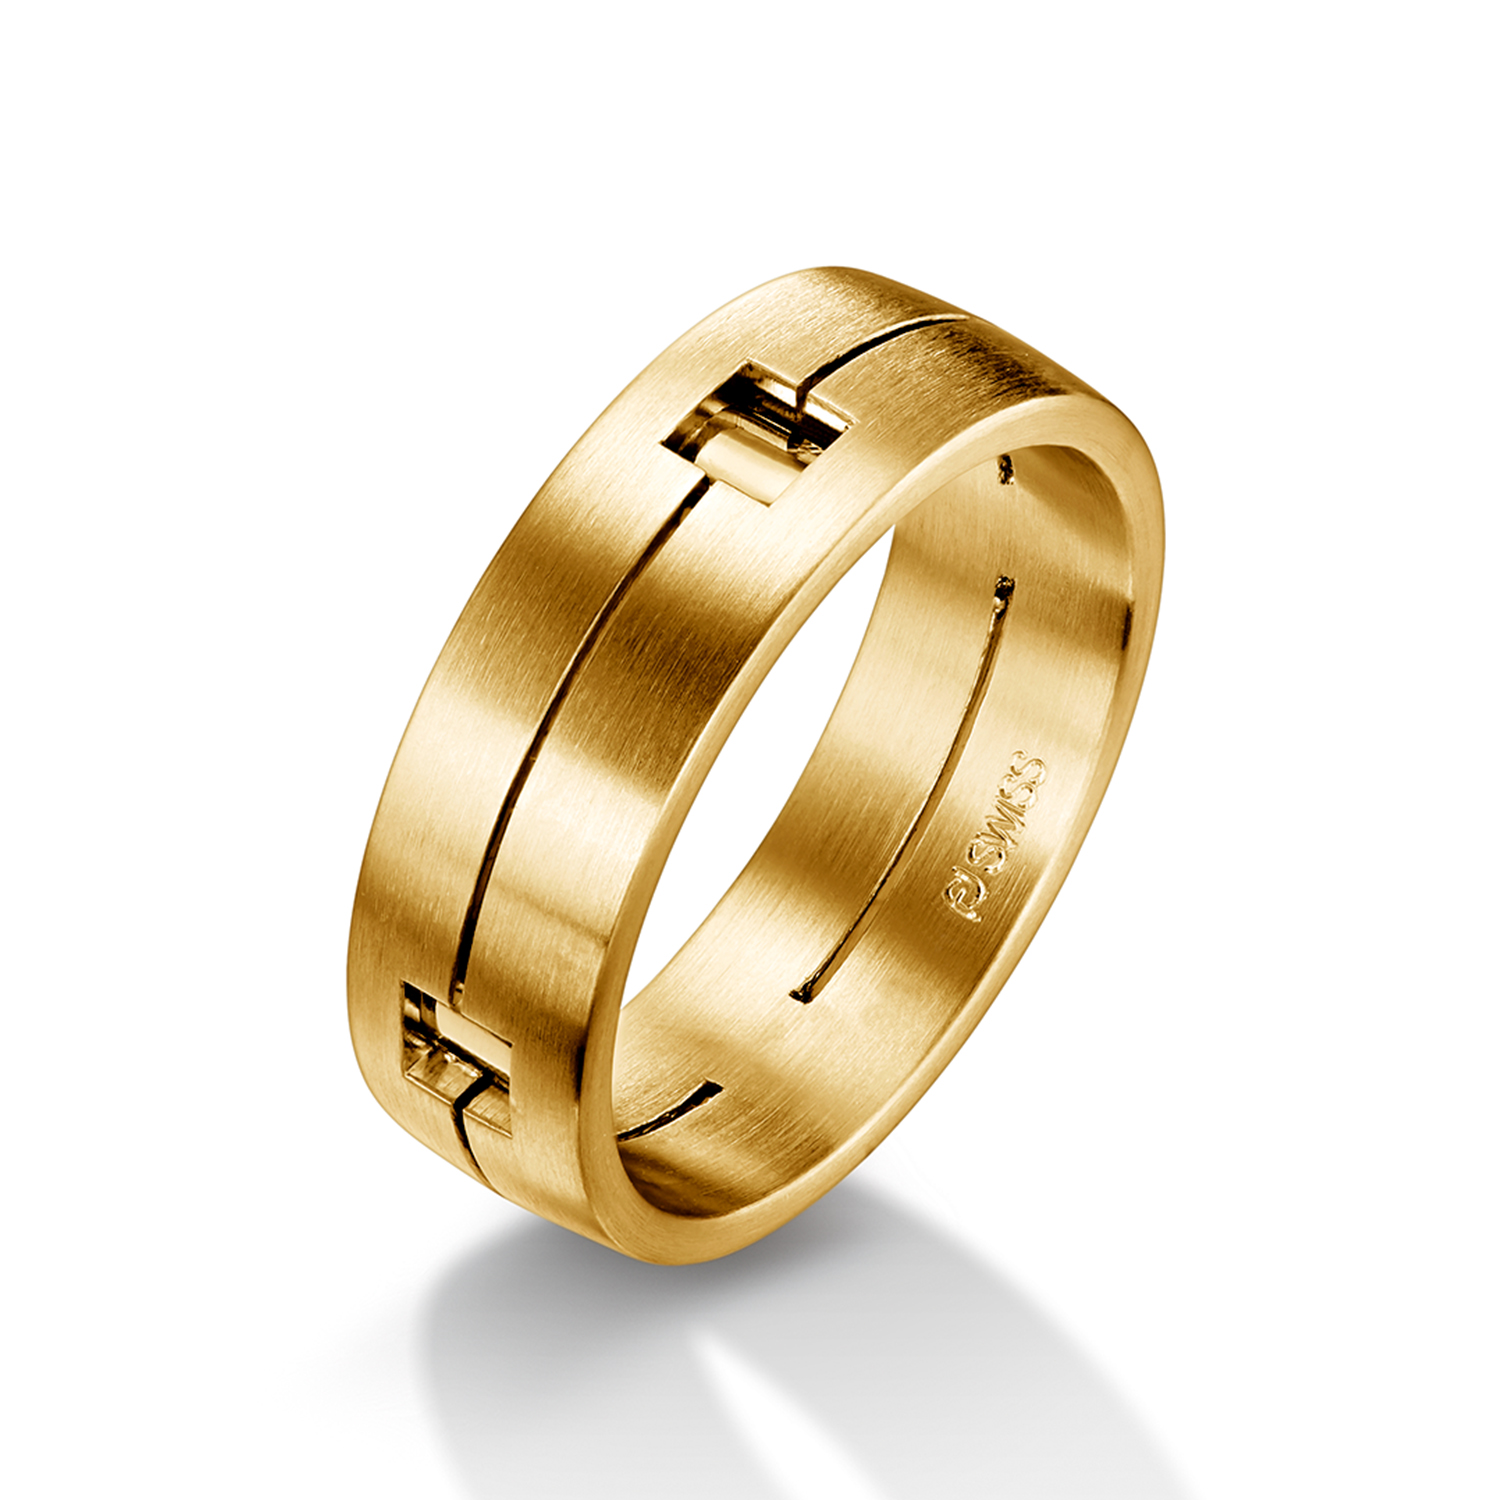 Man's world wedding rings in yellow gold